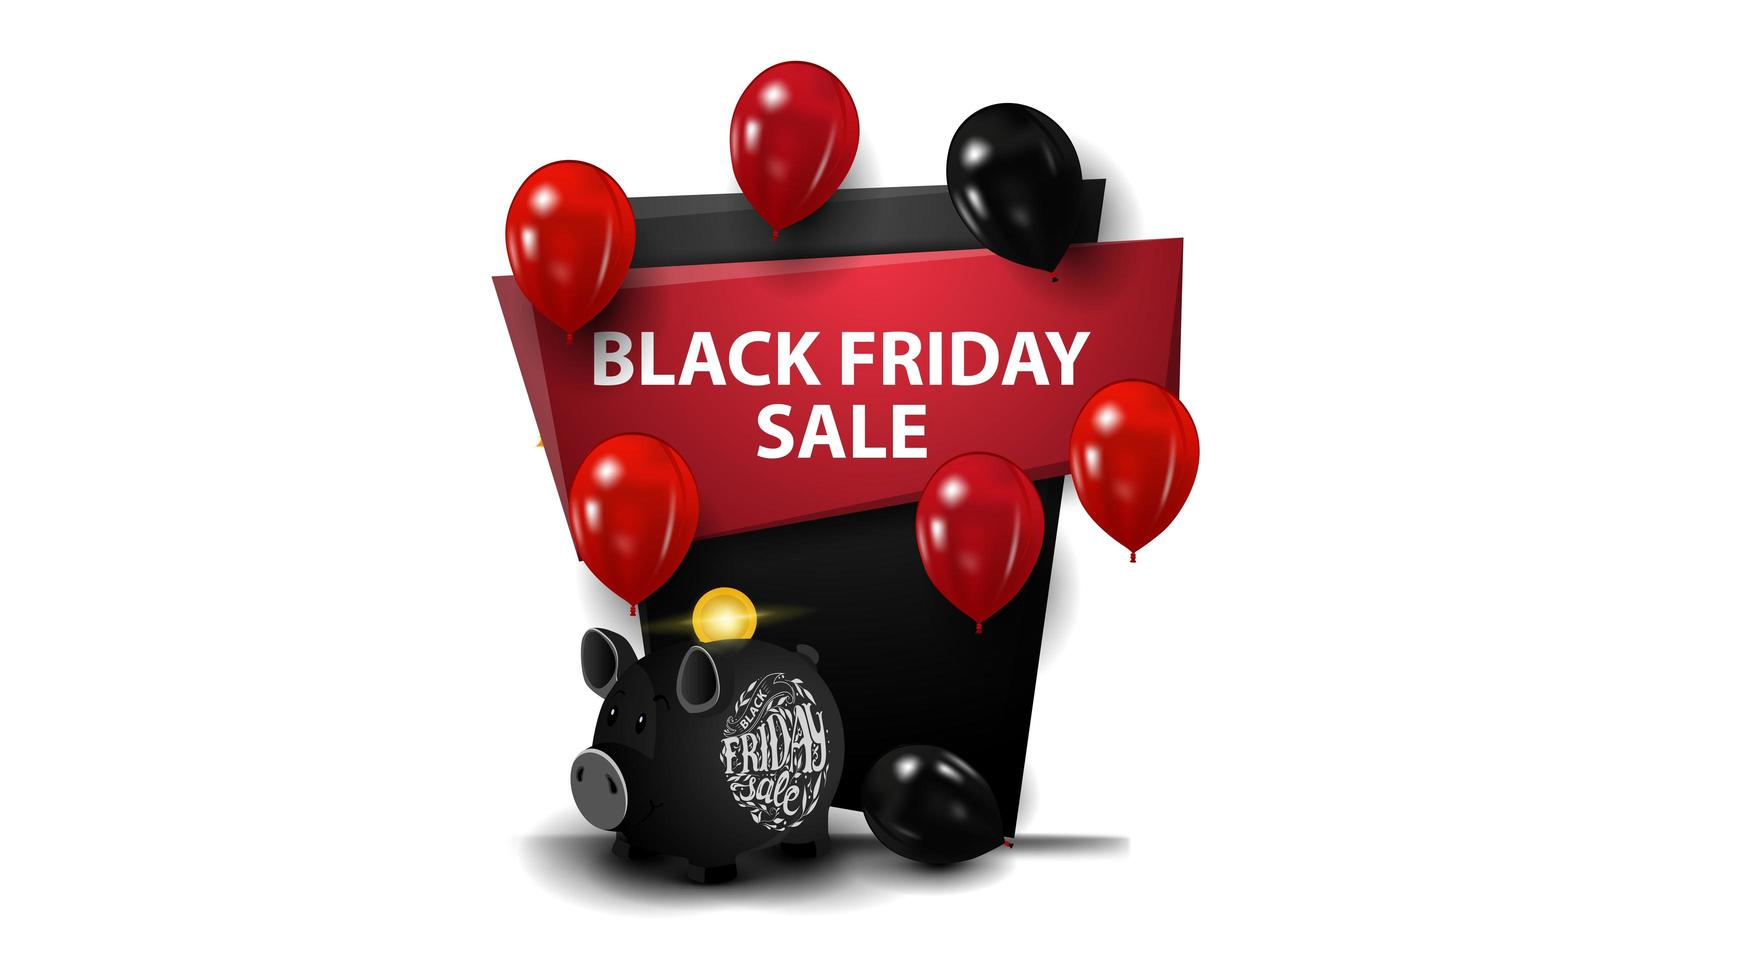 Black Friday sale, red and black banner in the form of geometric sign with piggy bank and balloons. vector